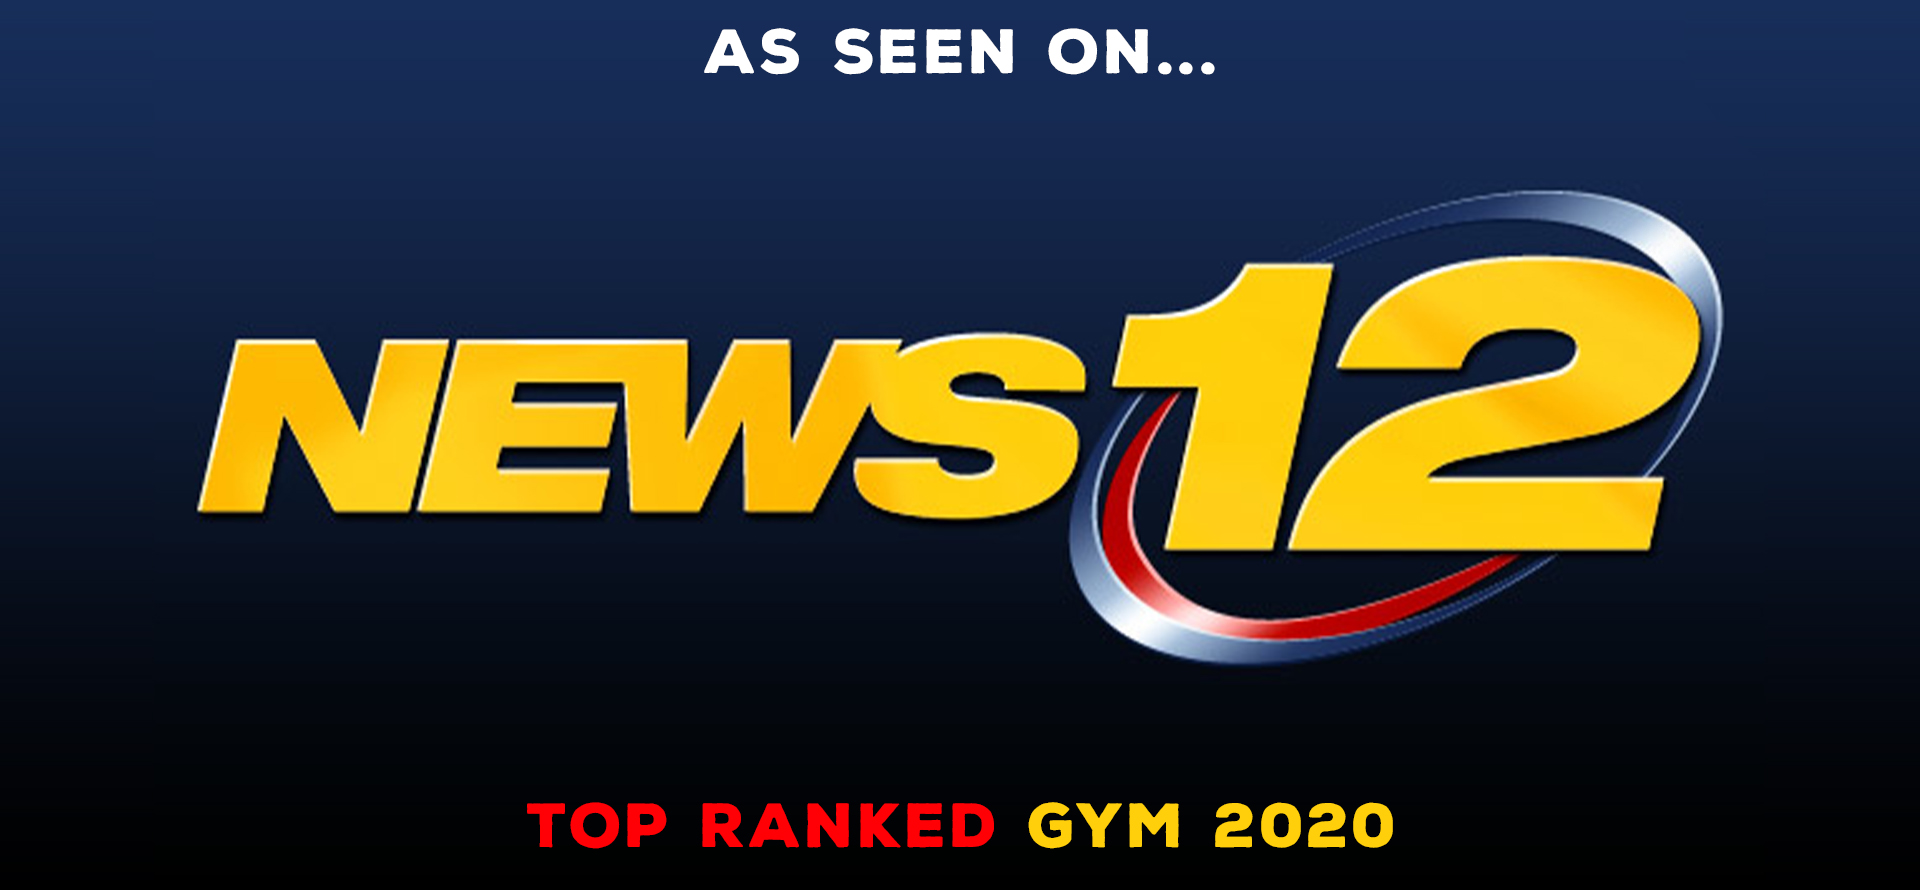 NEWS 12 As Seen ON!